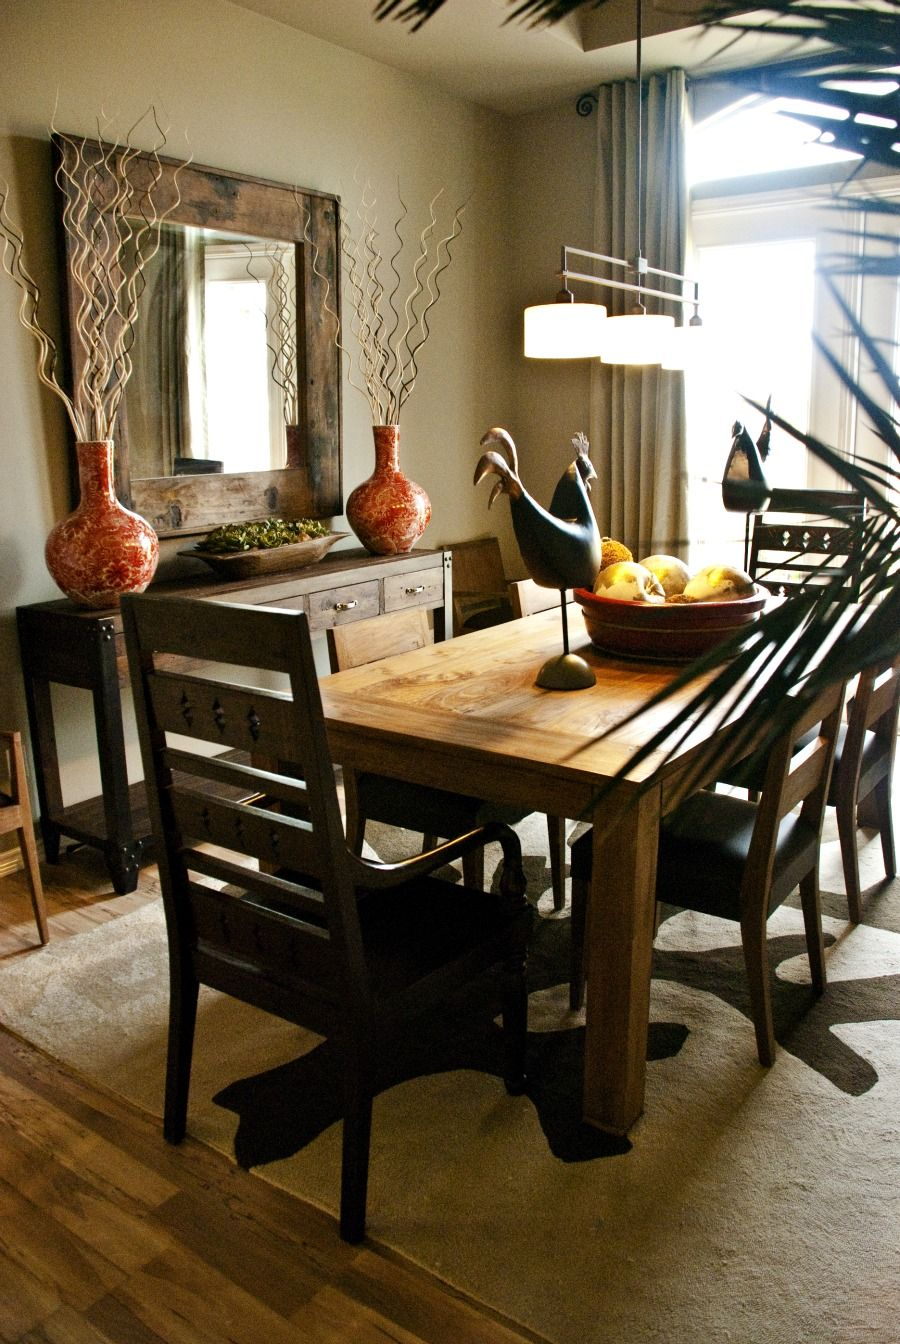 Rustic + contemporary = nice mix   Home, Dining room ...